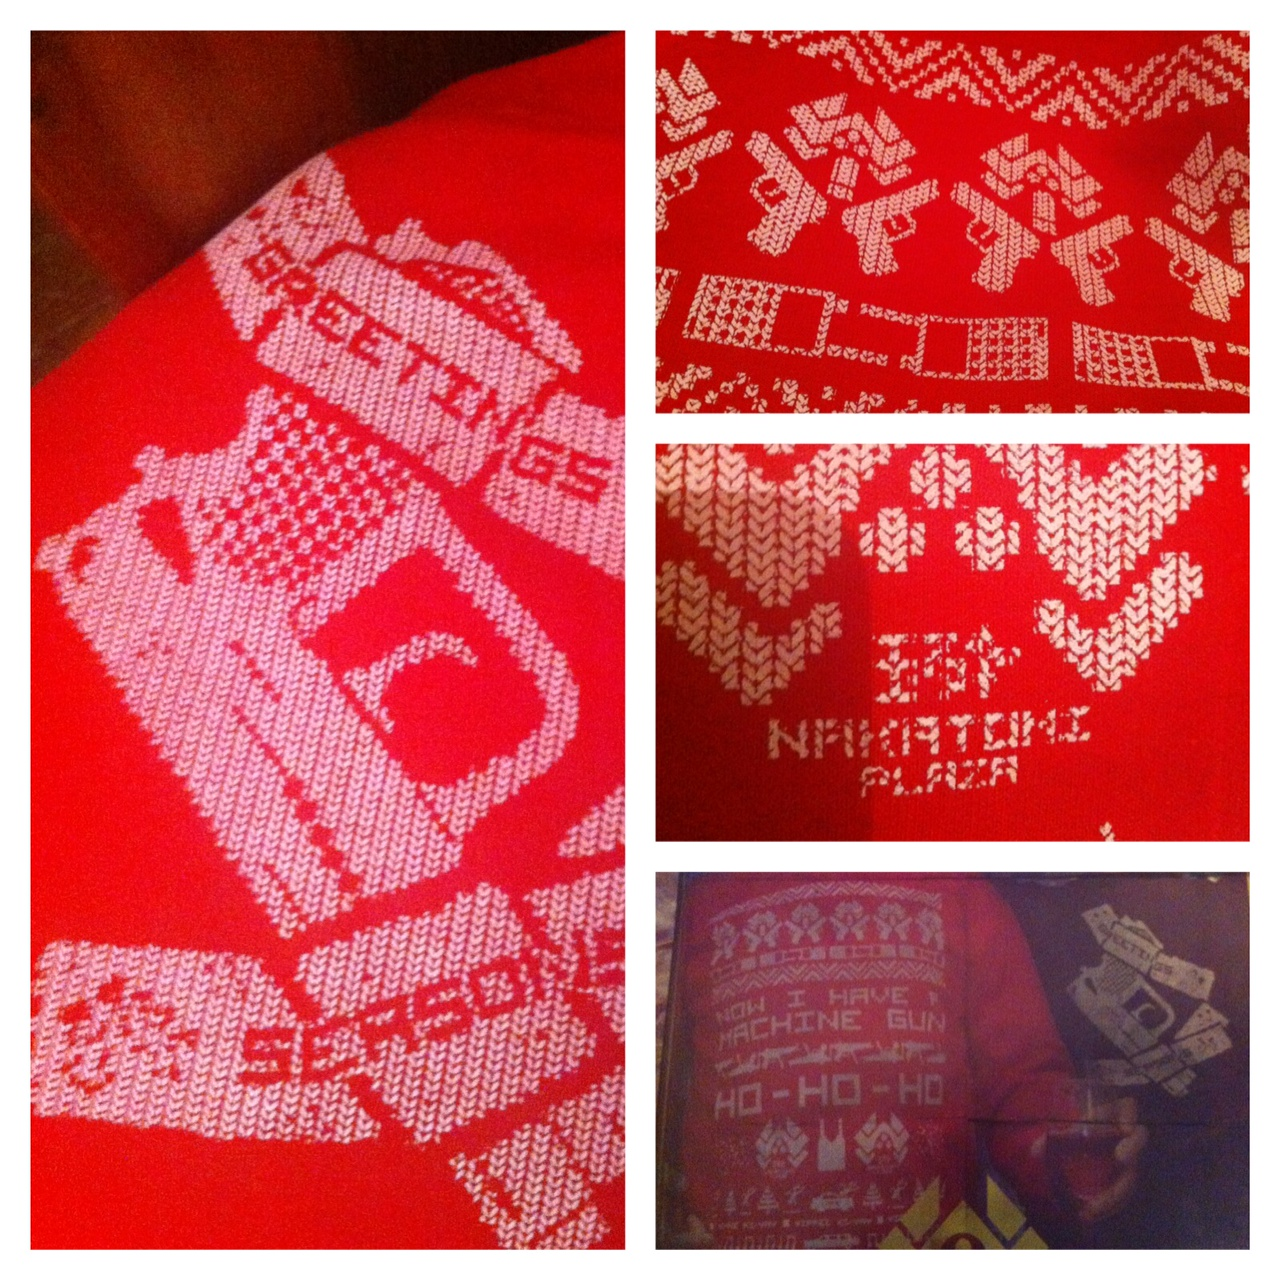 Do You Want to See My Die Hard Christmas Jumper from Dark Bunny Tees?